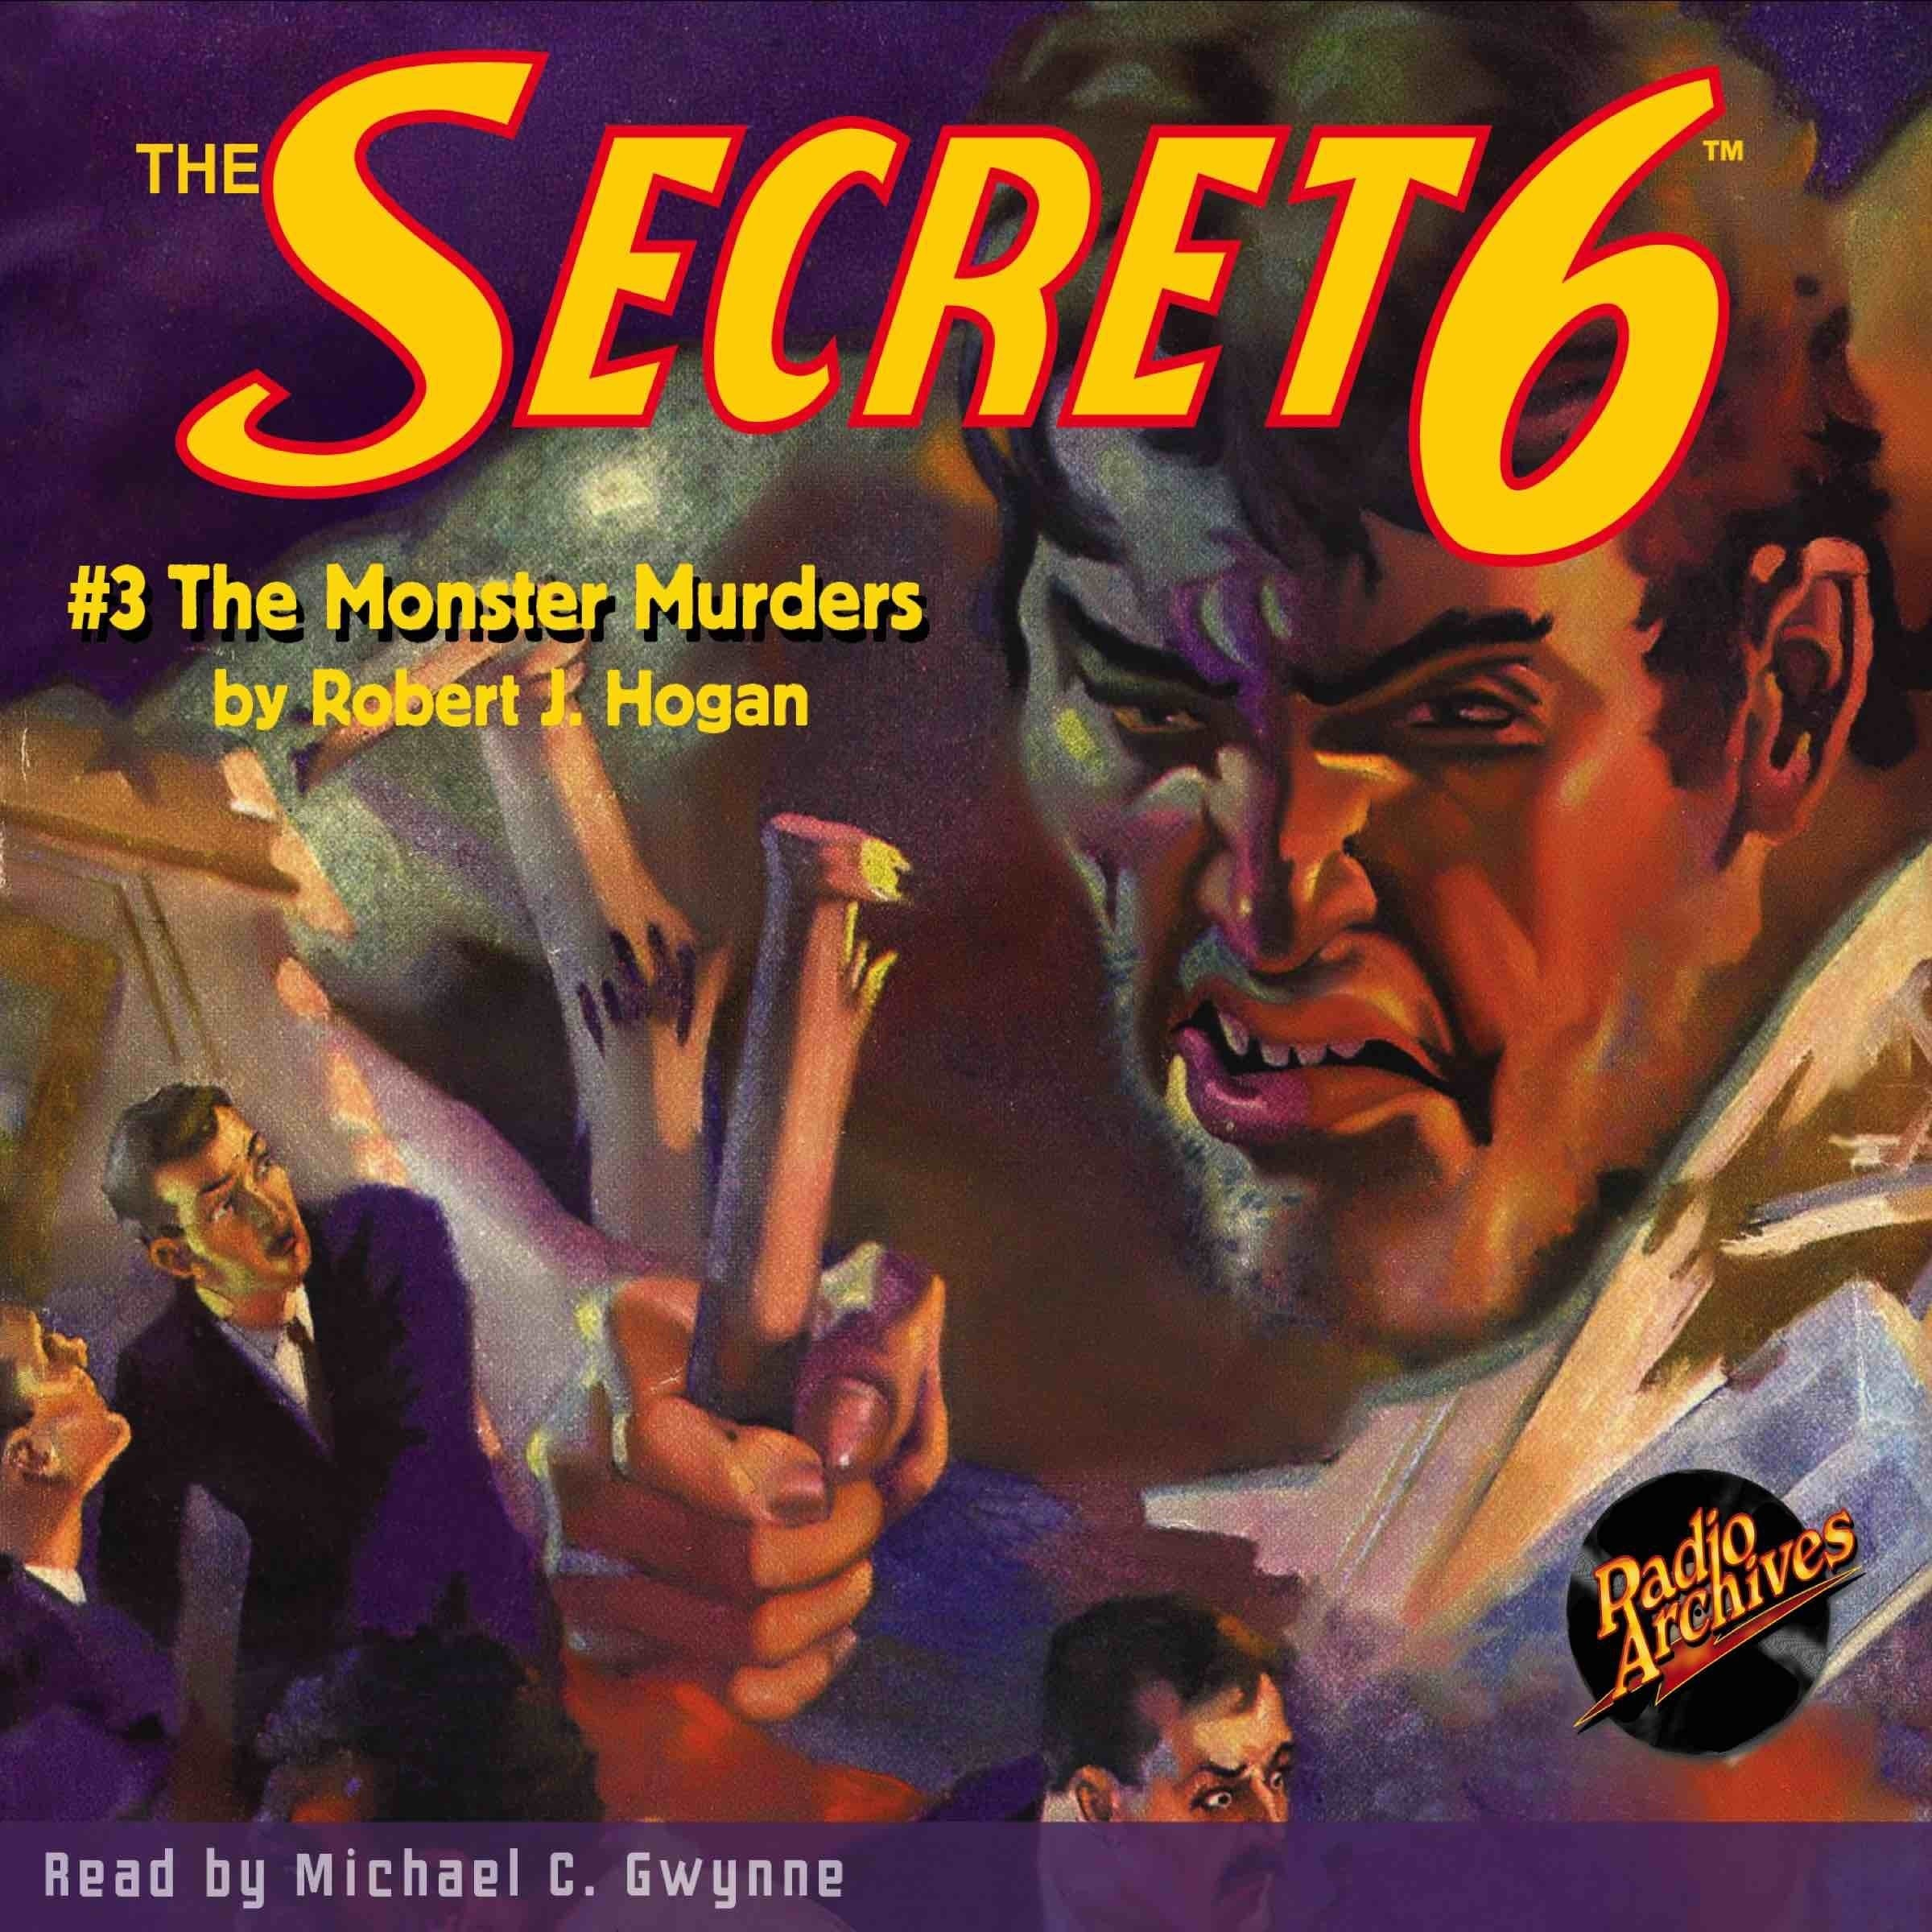 Printable Secret 6 #3, The: The Monster Murders Audiobook Cover Art